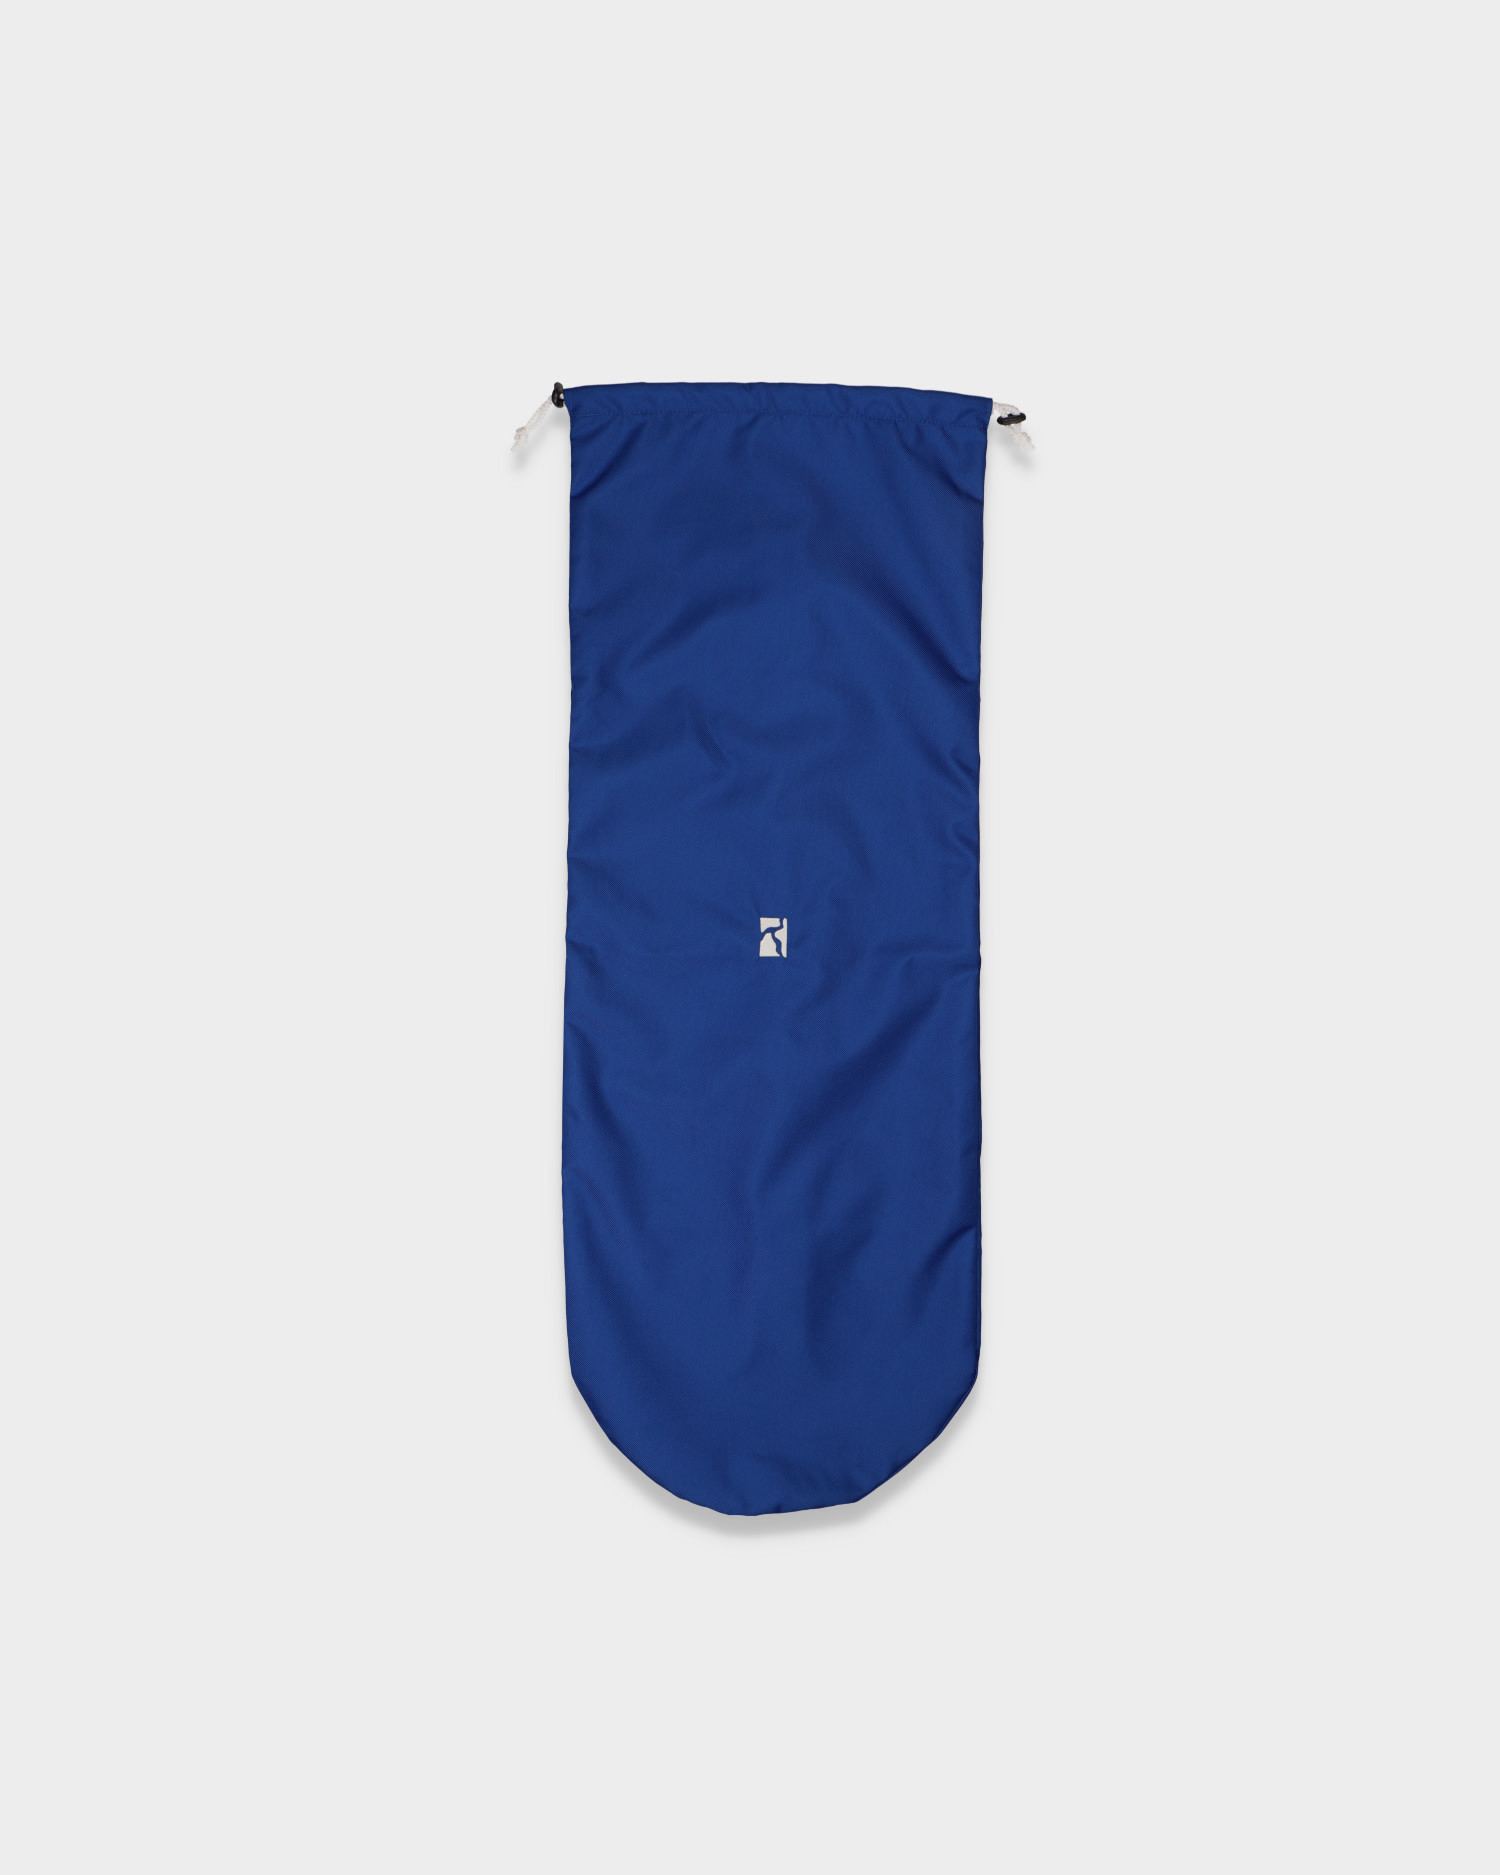 Poetic Collective Skate Bag Blue